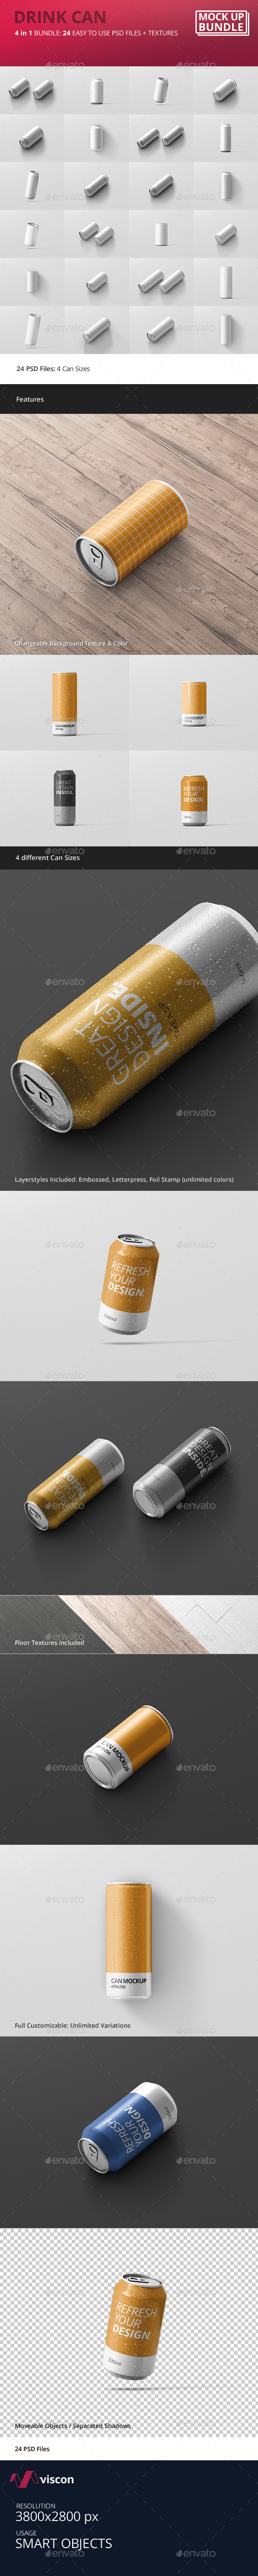 Drink Can Mockup Bundle - Food and Drink Packaging